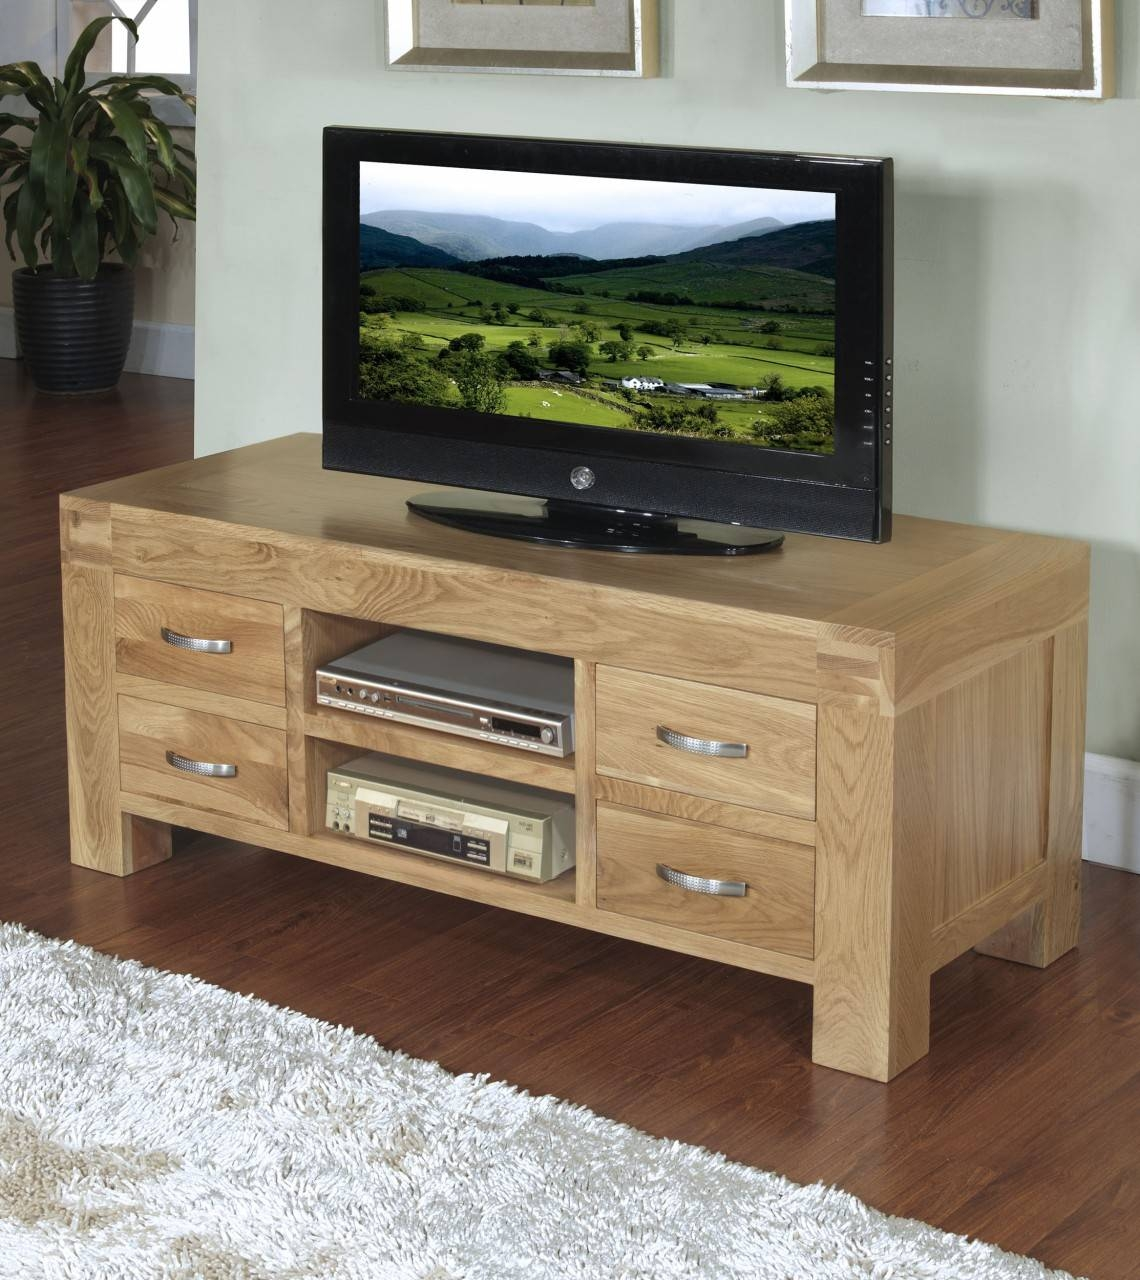 Best 15 Of Rustic Wood Tv Cabinets